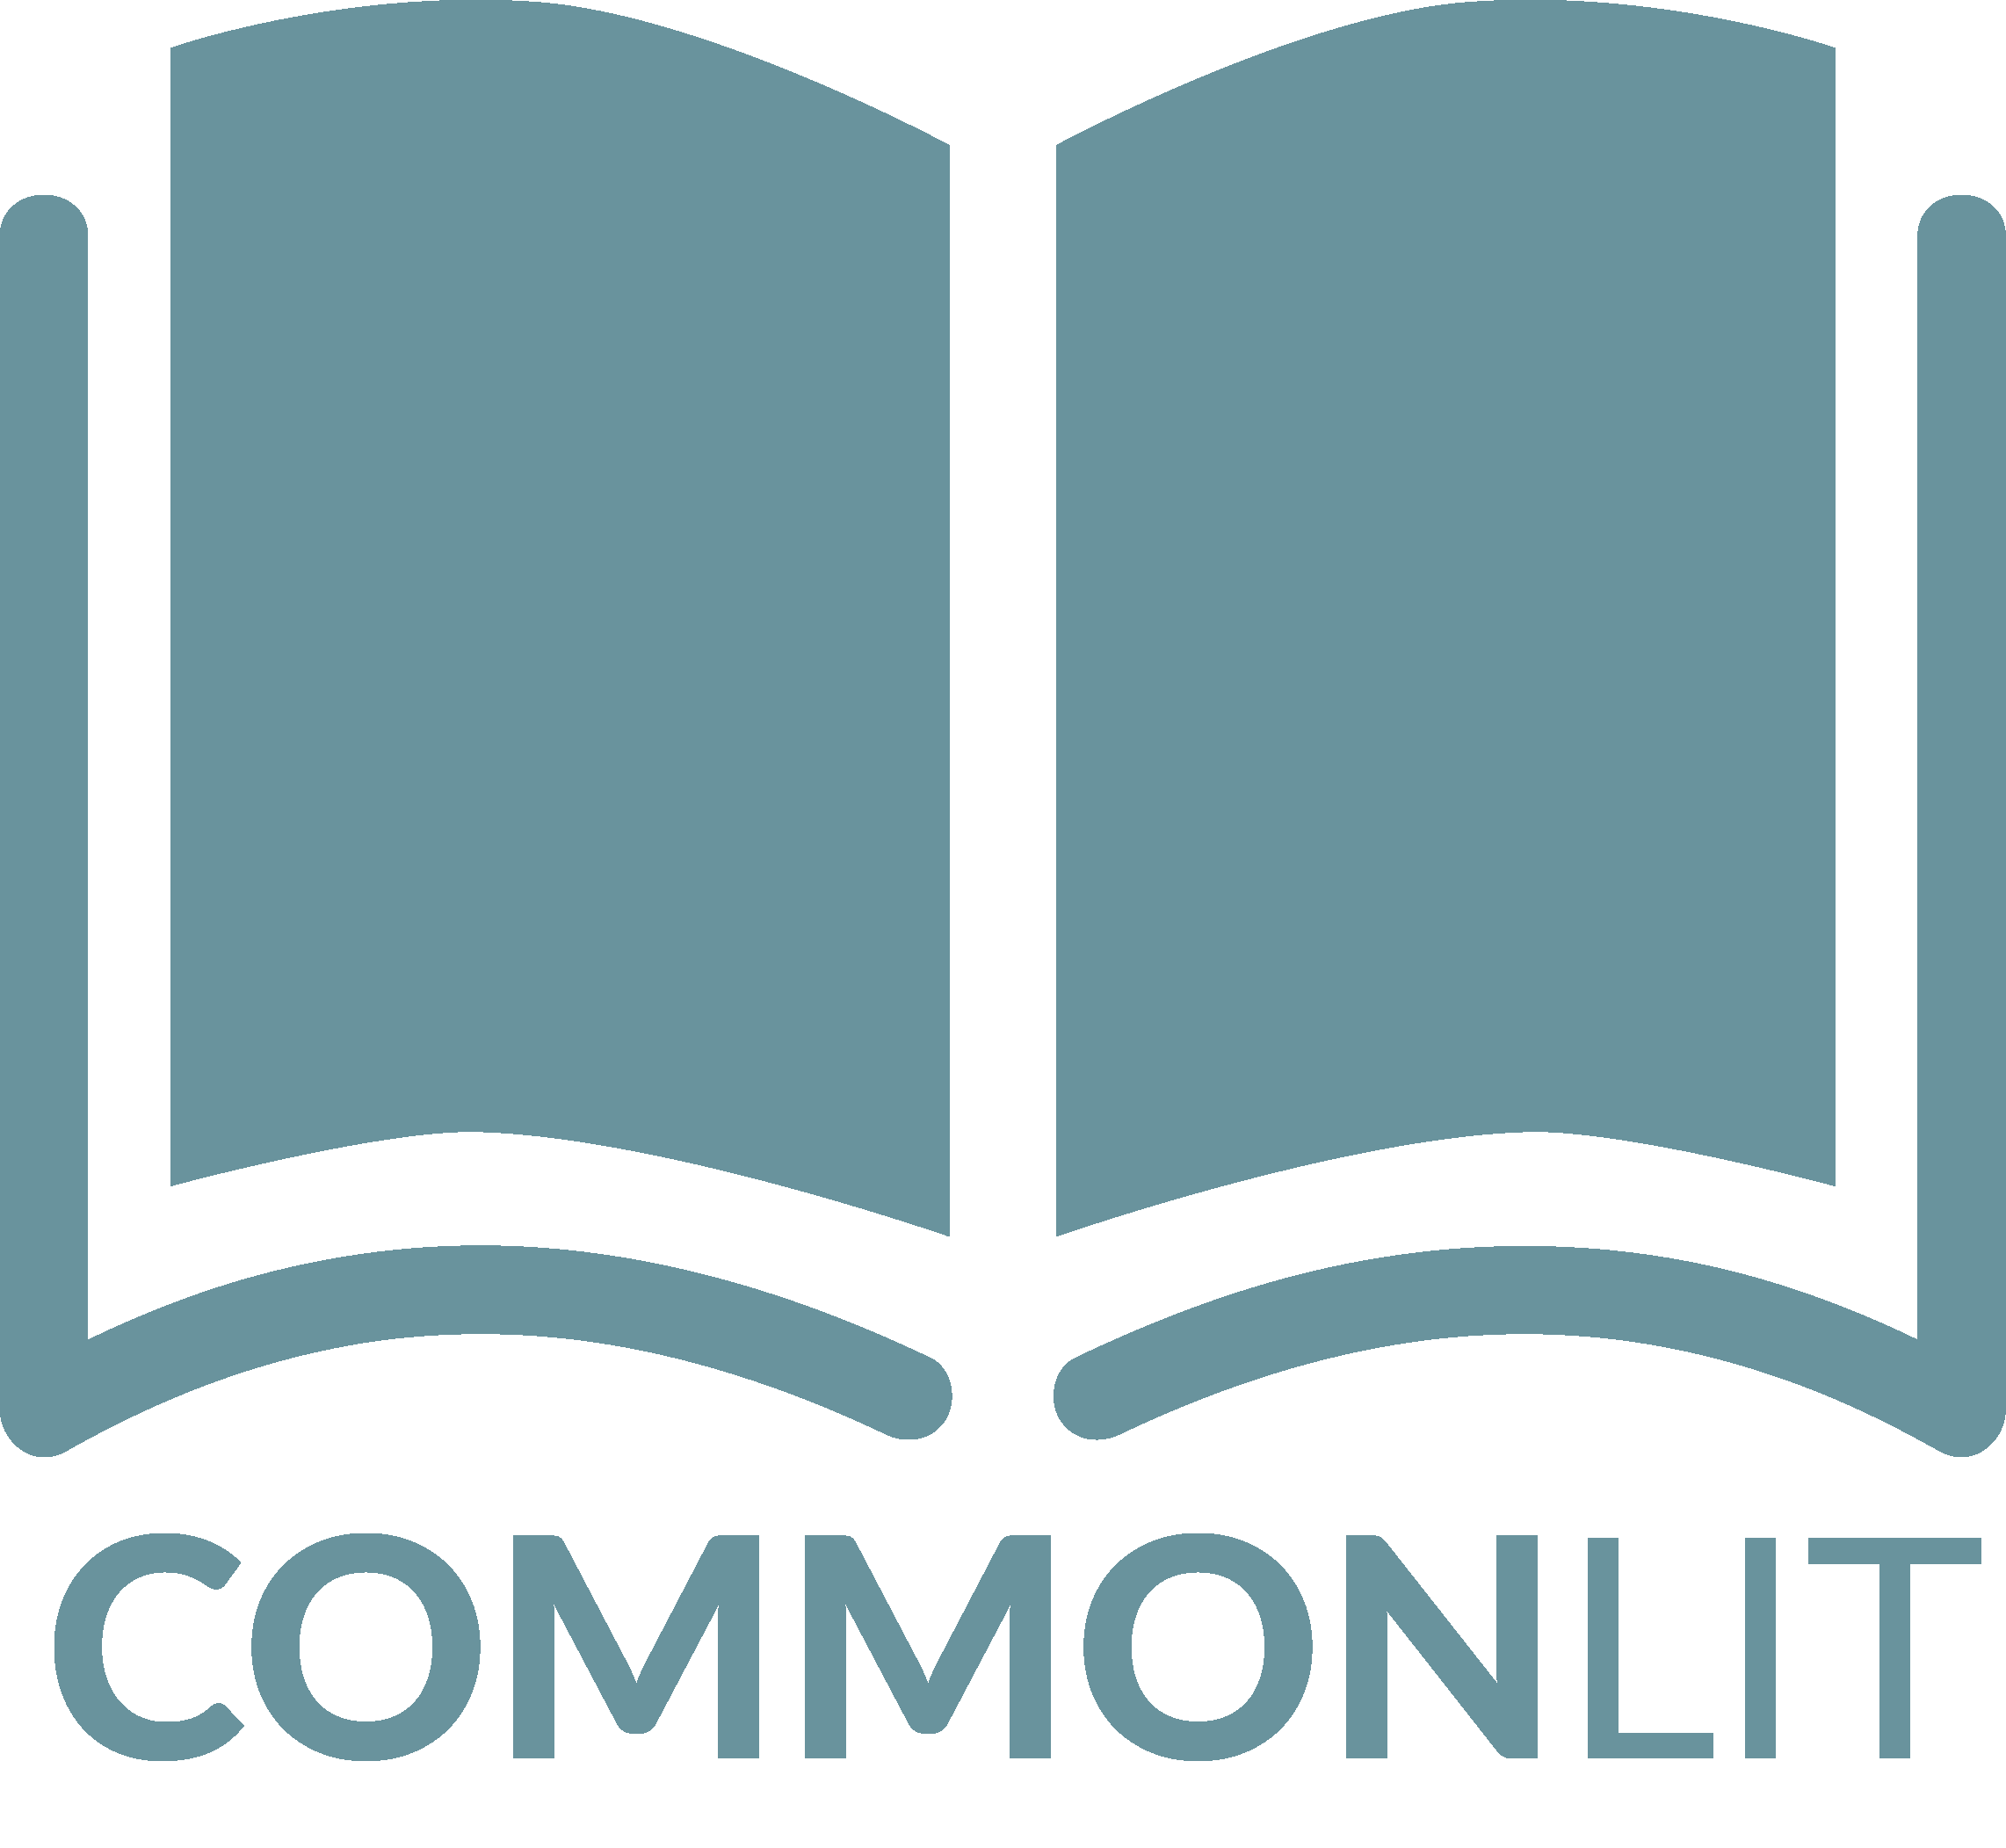 CommonLit_New_Logo_Trans_Blue